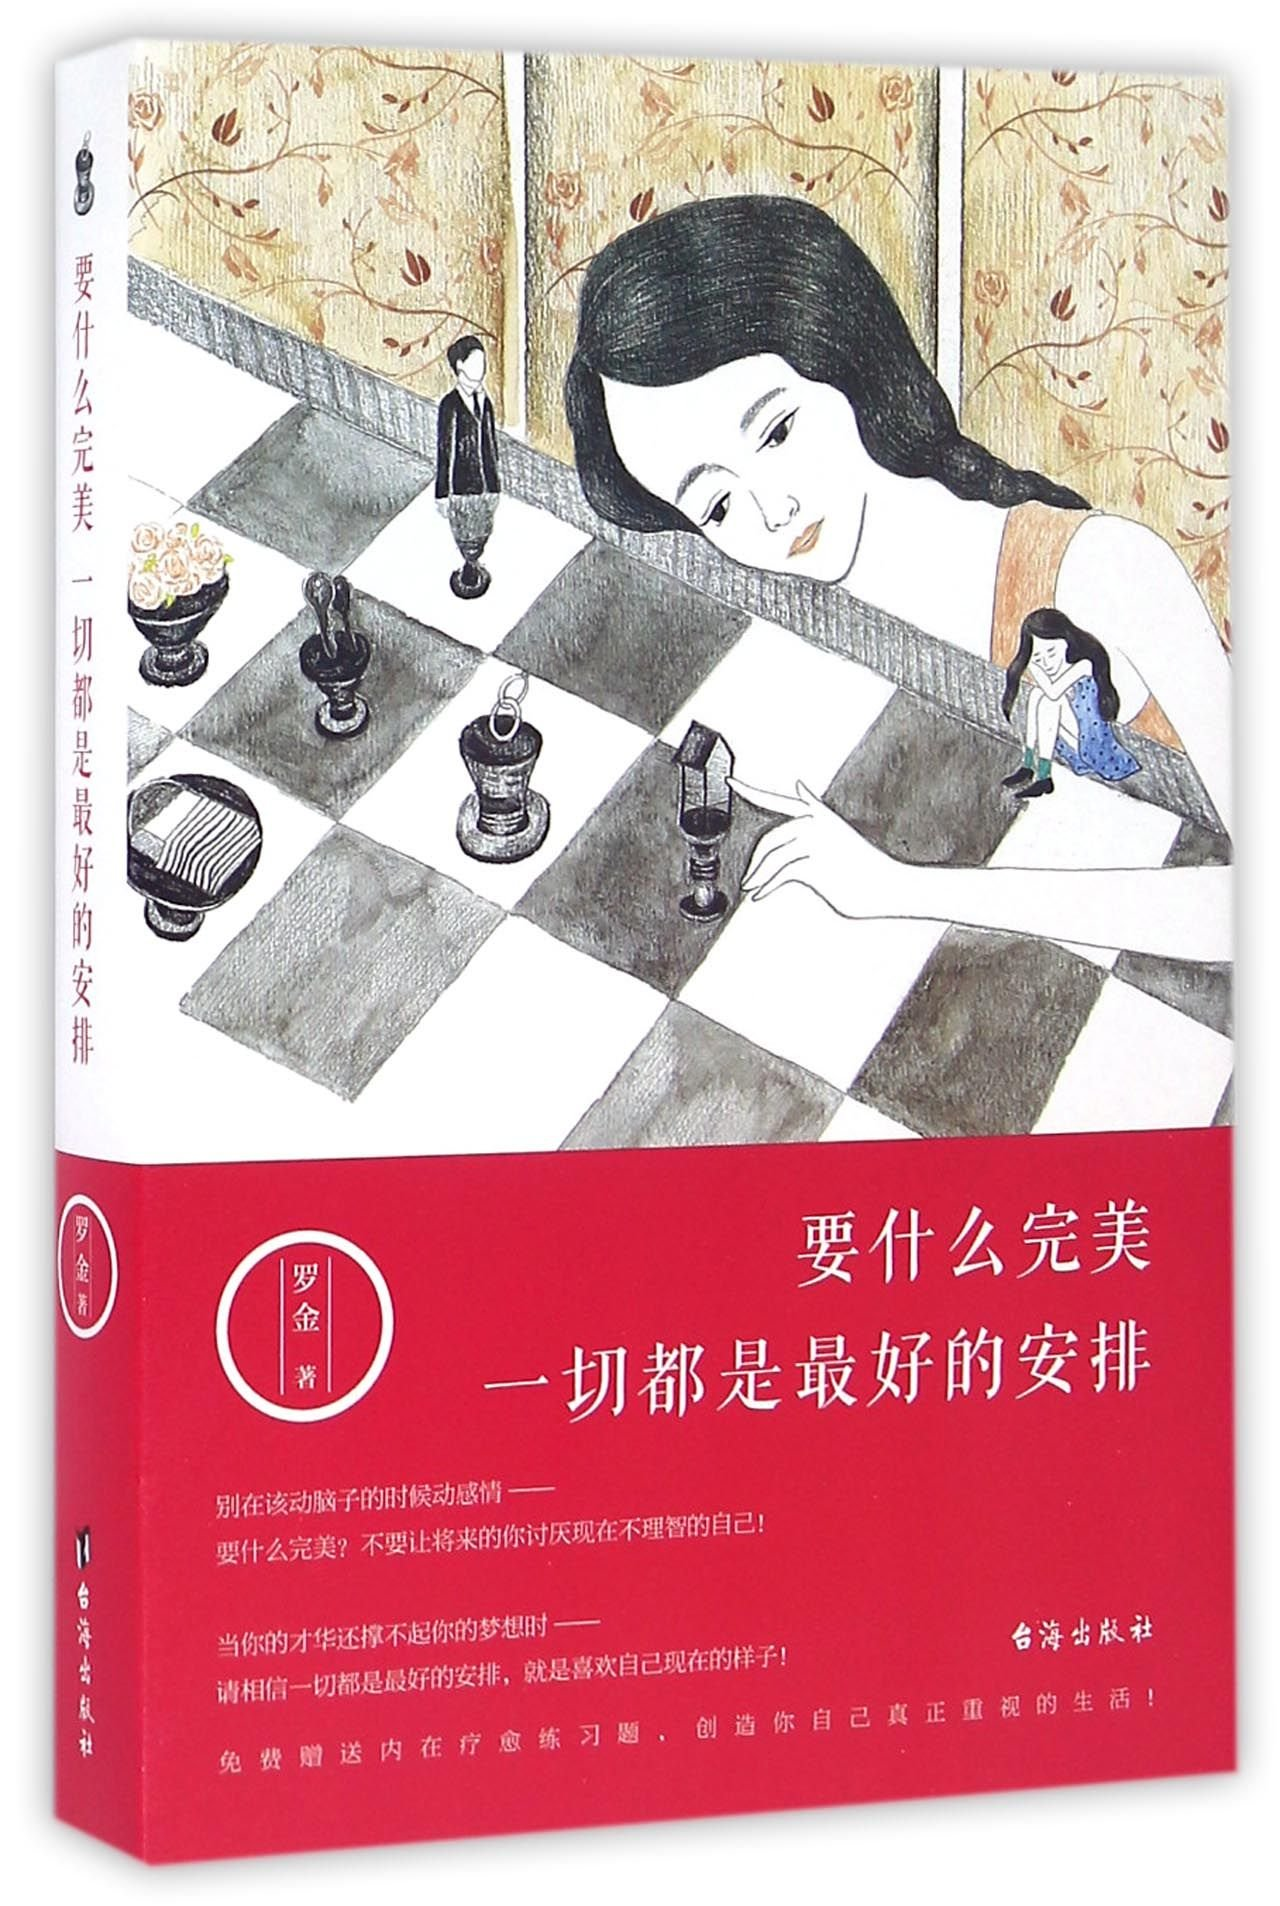 Everything Here and Now Is the Best Arrangement (Chinese Edition) ebook